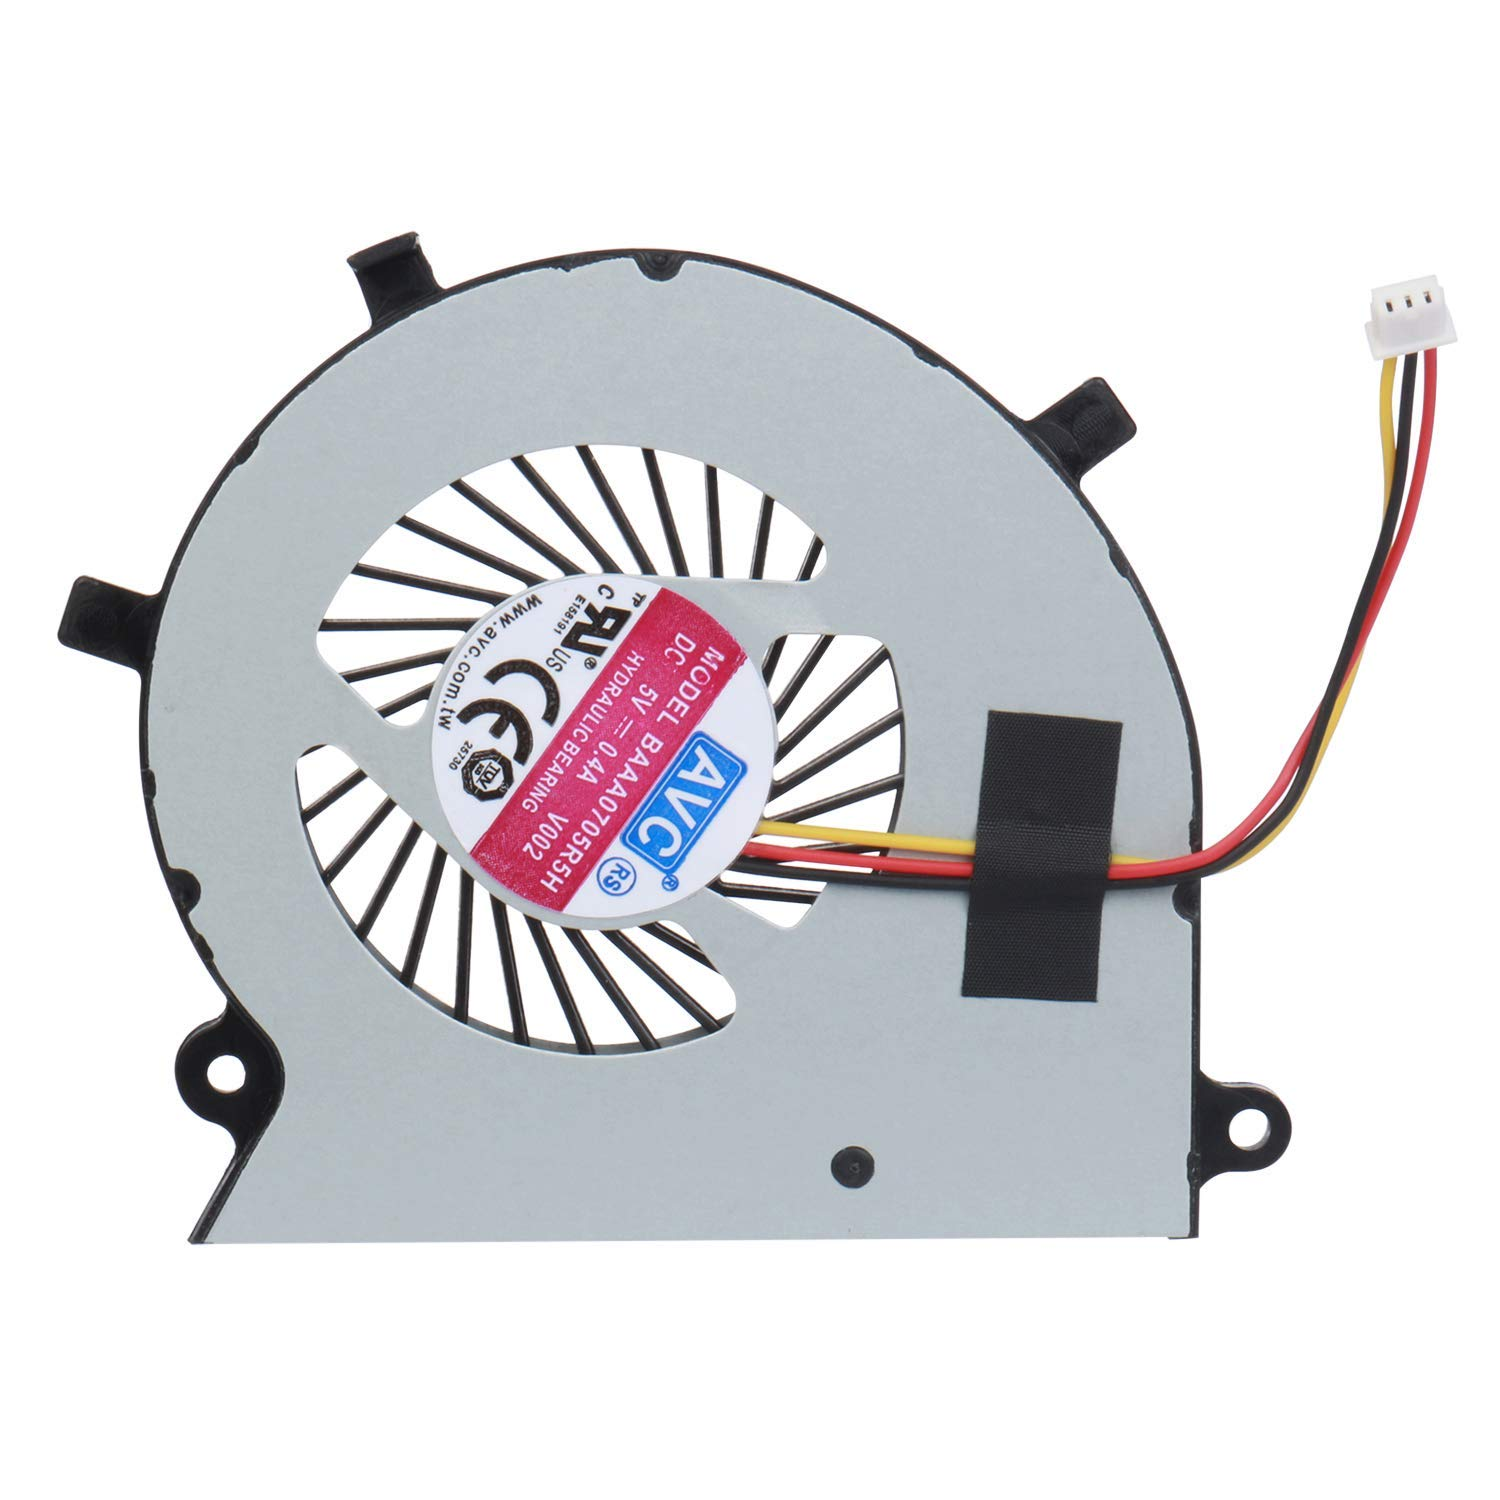 Miss parts CPU Cooling Fan Replacement for Toshiba Satellite Radius P55W-B P55W-B5112 P55W-B5162SM P55W-B5181SM P55W-B5201SL P55W-B5220 P55W-B5224 P55W-B5260SM P55W-B5318 P55W-B5380SM Series